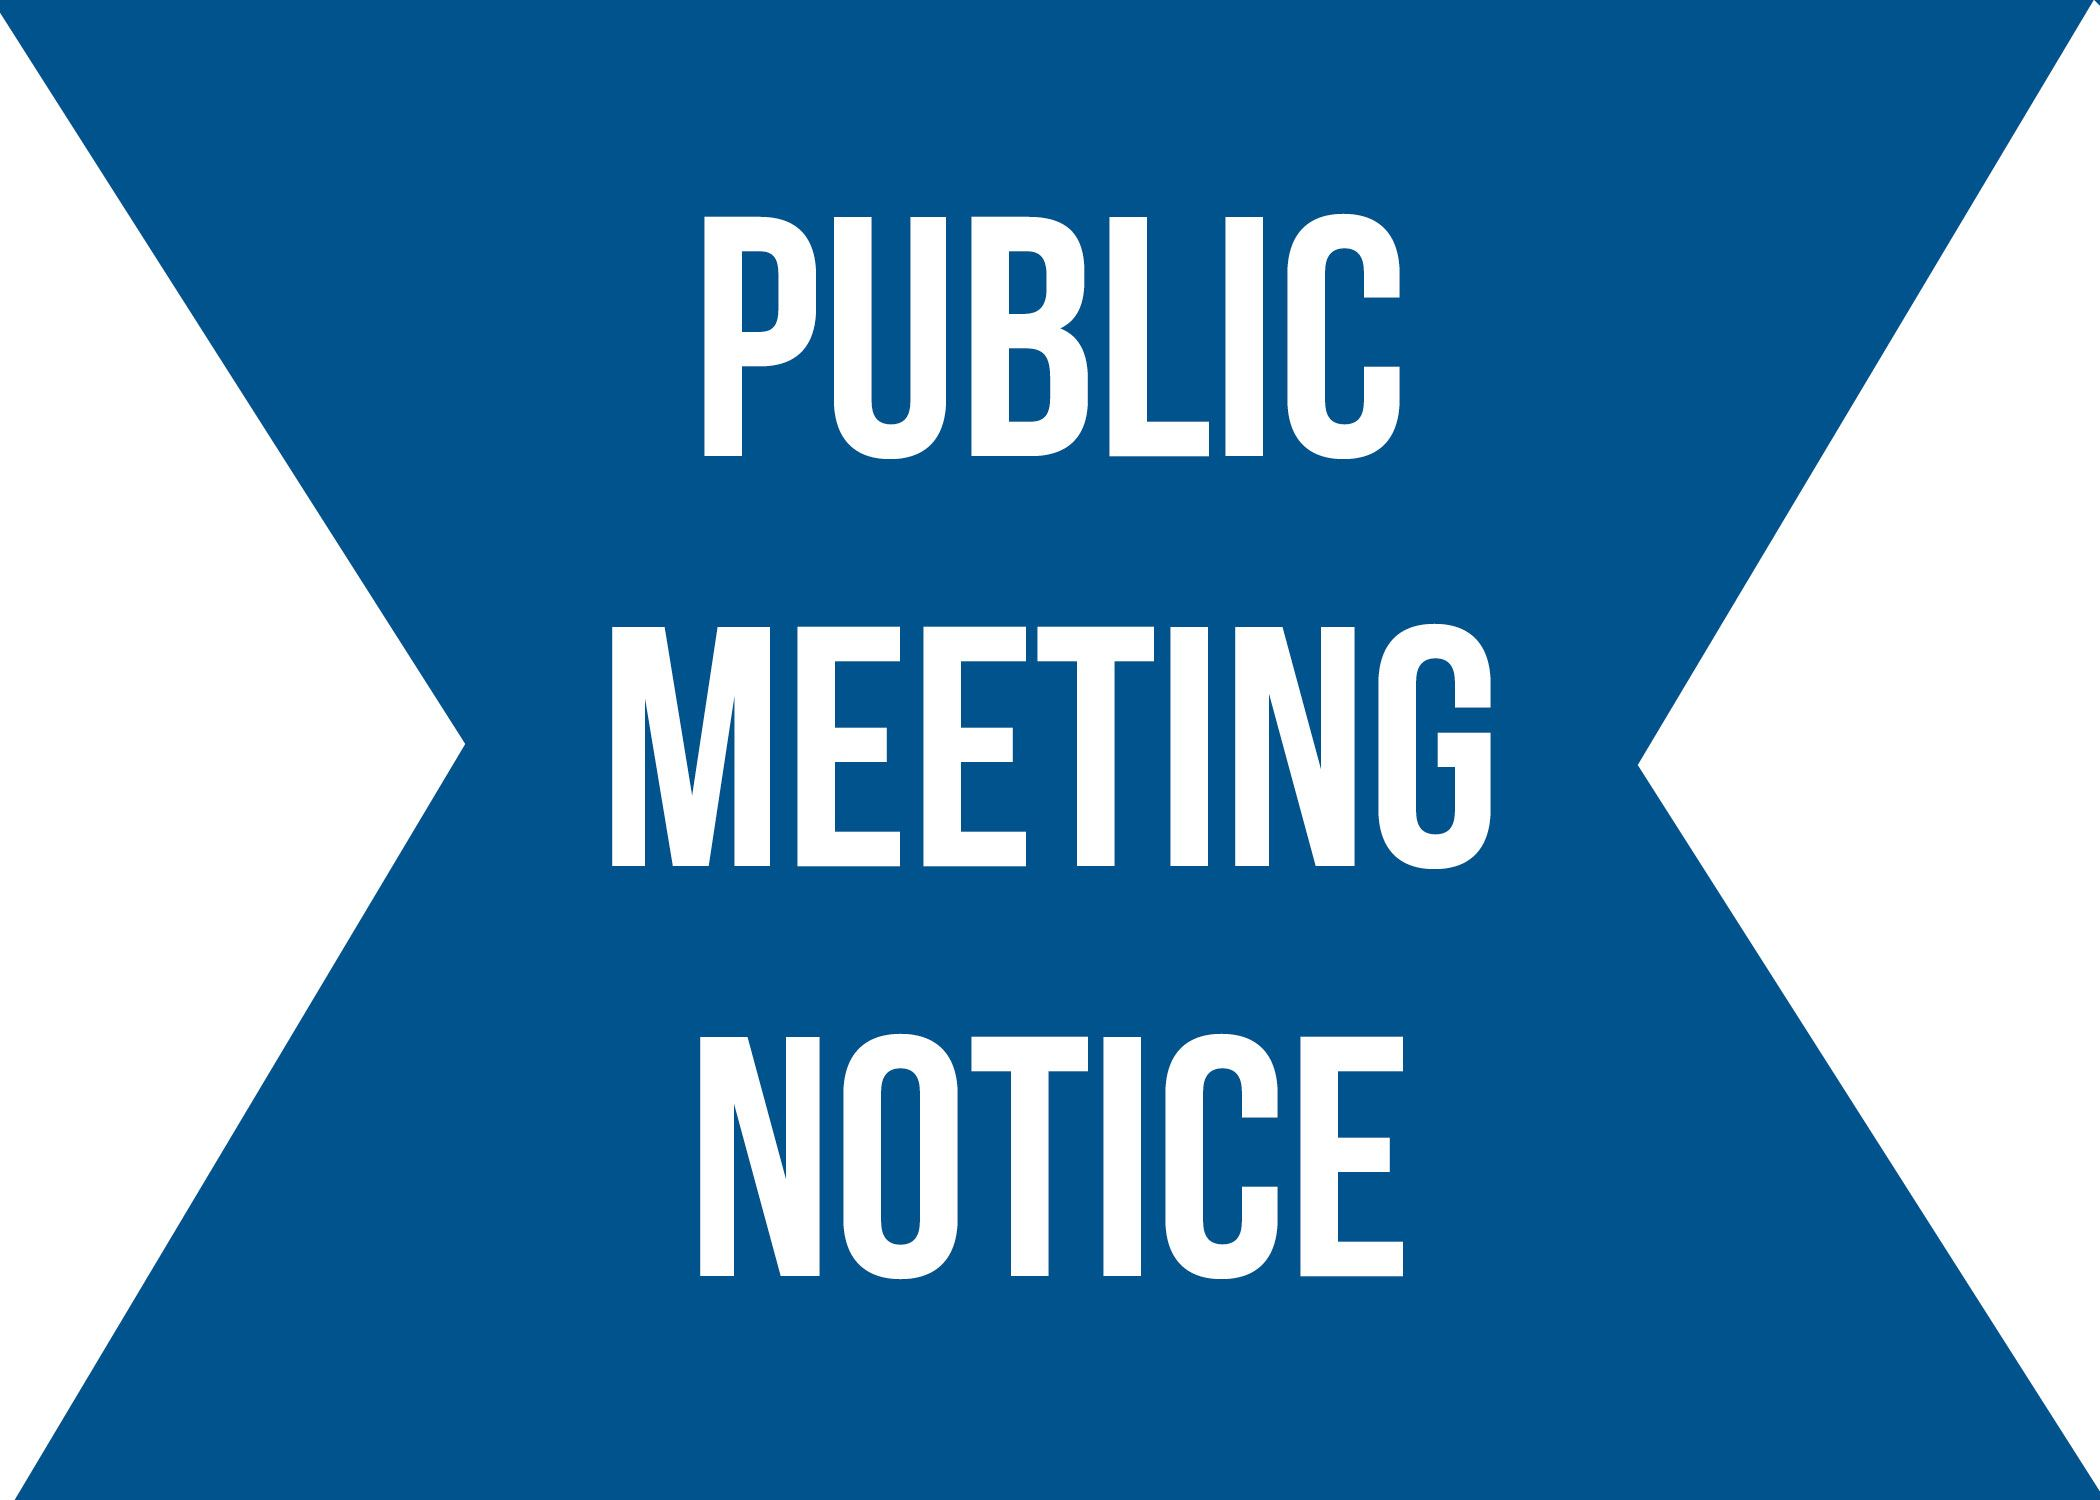 Public Meeting Notice Announcement